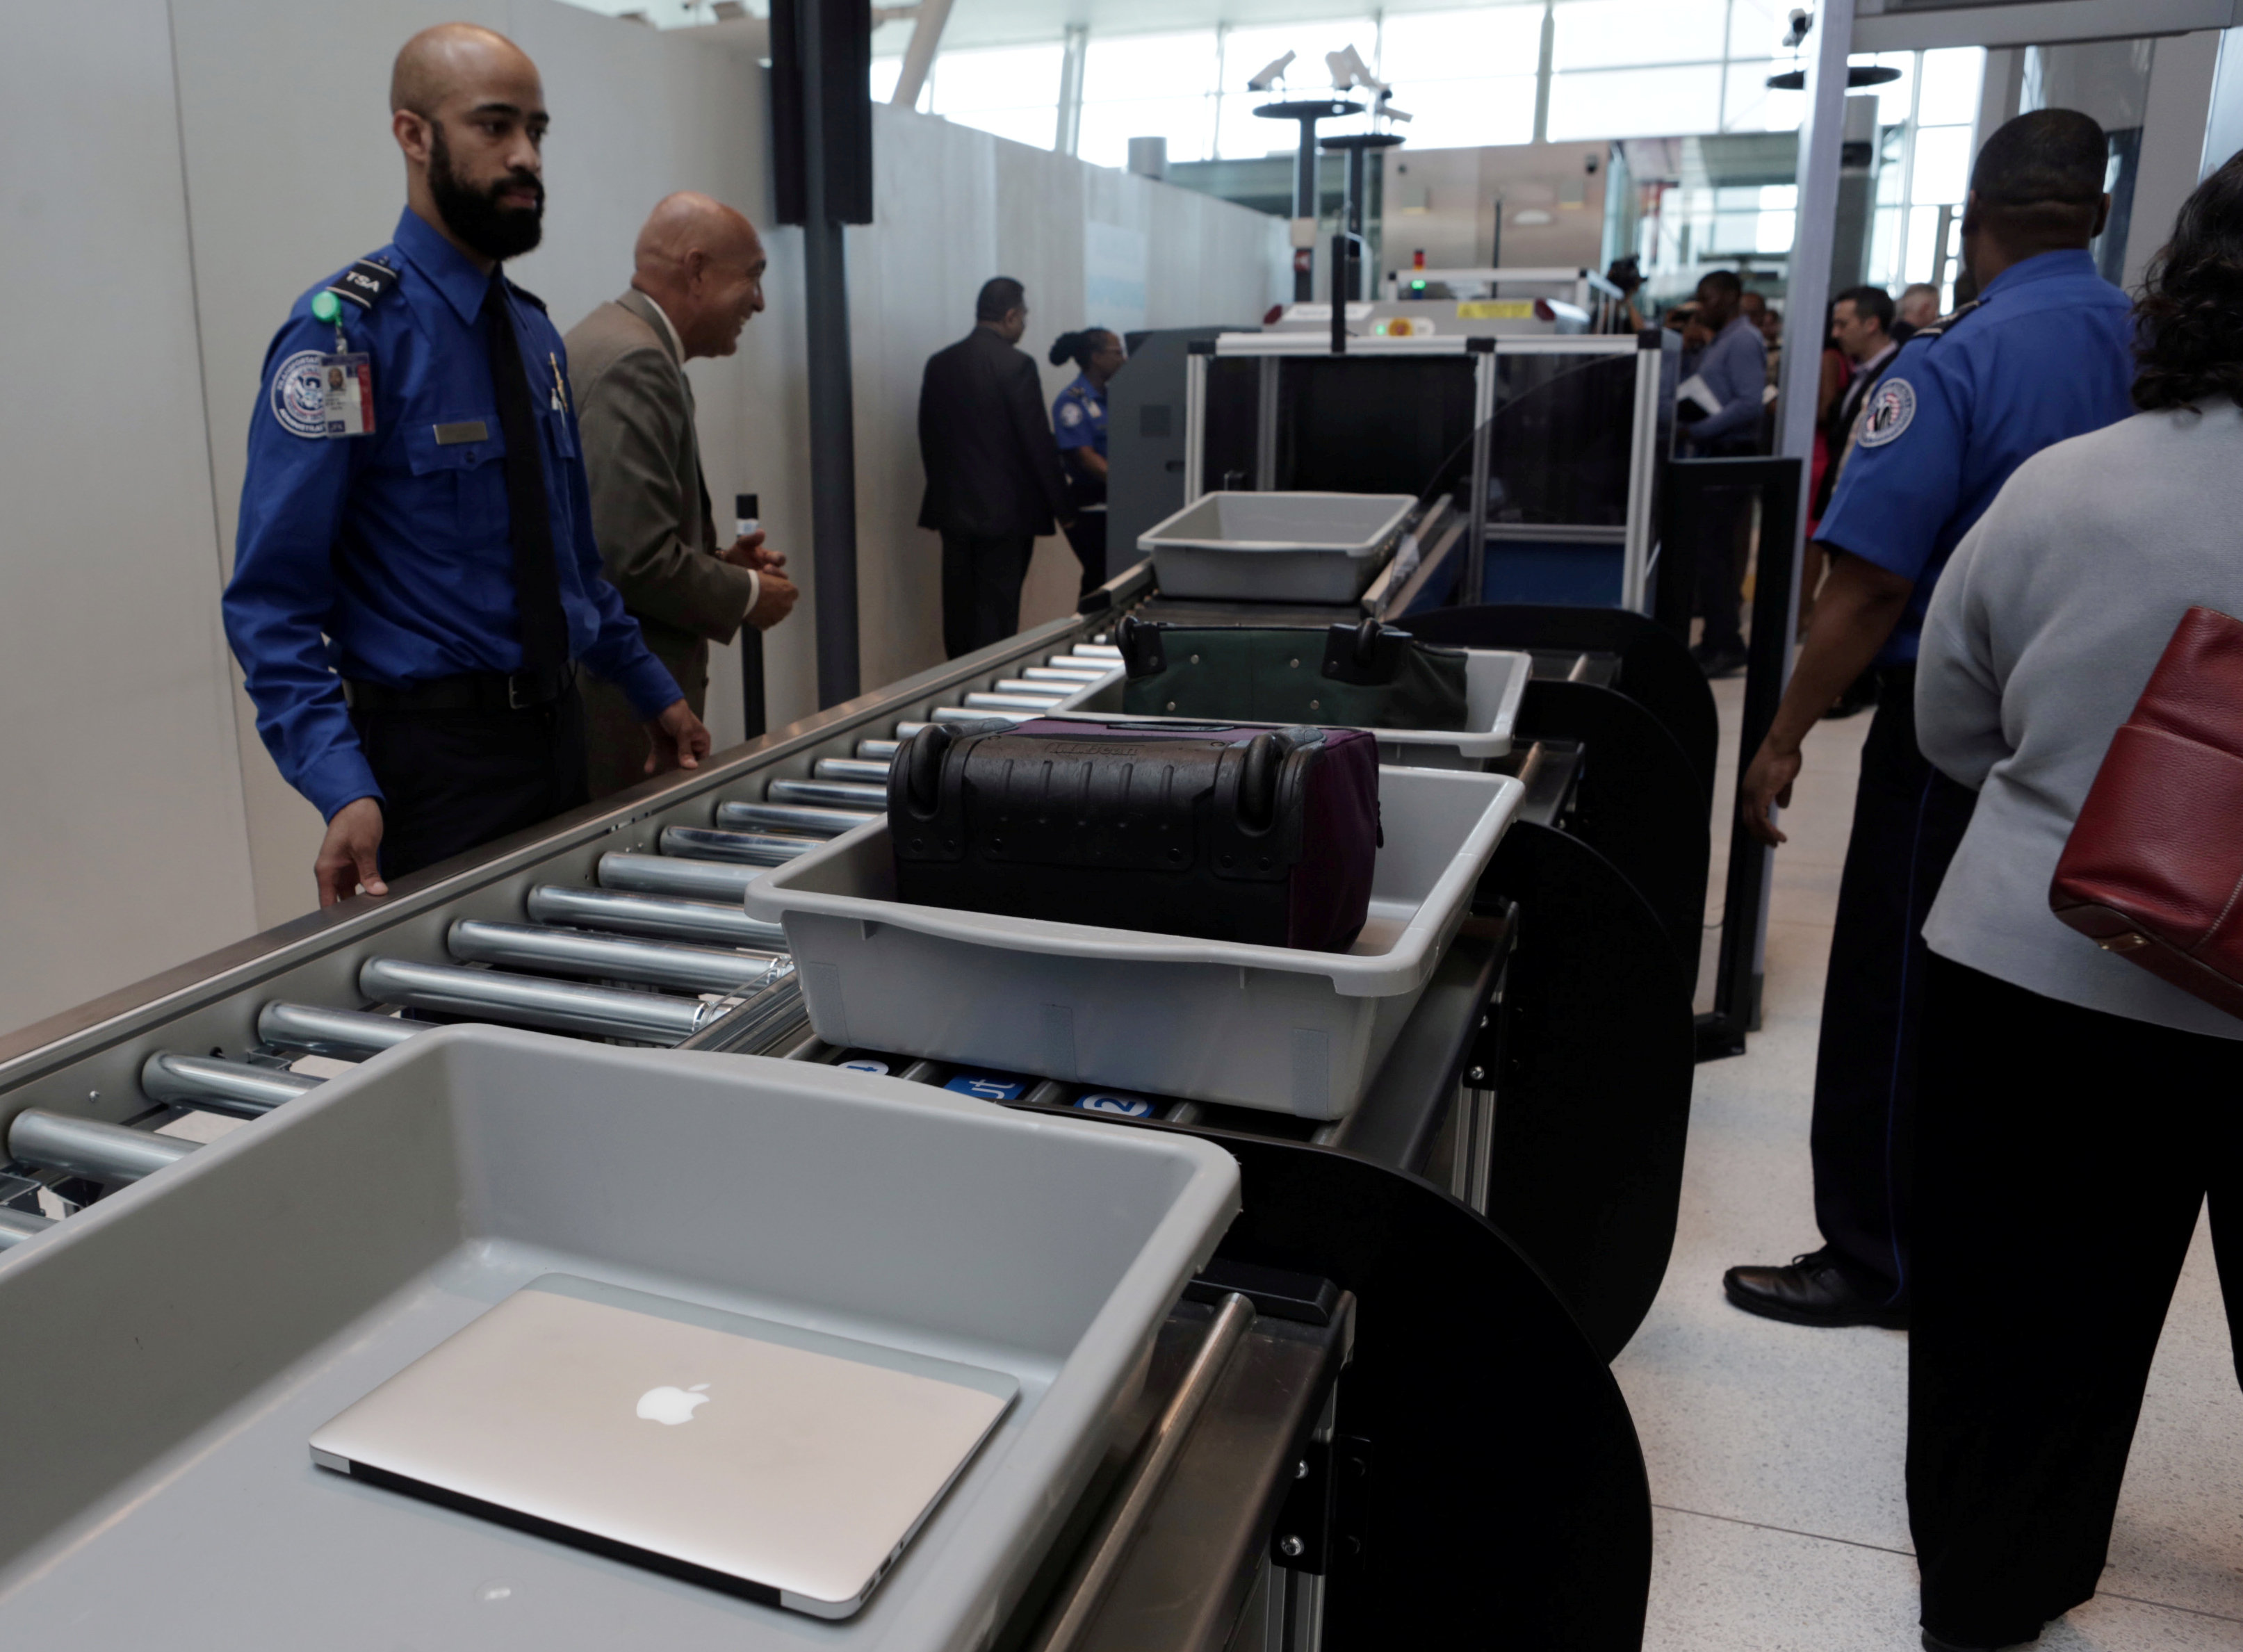 FILE PHOTO: Baggage and a laptop are scanned using the Transport Security Administration's new Automated Screening Lane technology at Terminal 4 of JFK airport in New York City, U.S., May 17, 2017. REUTERS/Joe Penney/File Photo